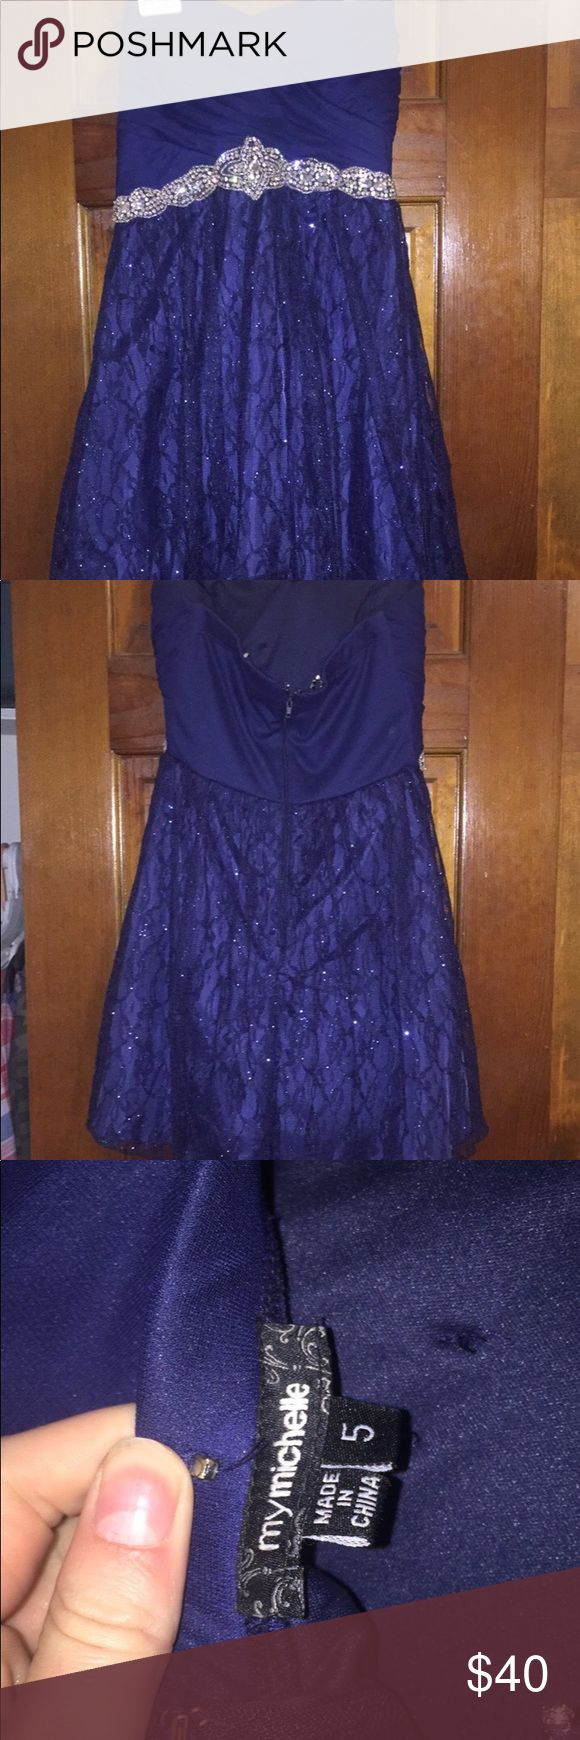 NAVY BLUE SHORT HOMECOMING DRESS The actual color is a very dark navy, however shows up lighter w flash Only worn once like 3 yrs ago Size 5 Little pieces of where i added straps (shown in last pic) but tore off Beautiful silver sparkly belt (attatched) with a sparkly lace skirt In wonderful condition!! PRICE IS NEGOTIABLE!! Dresses Mini